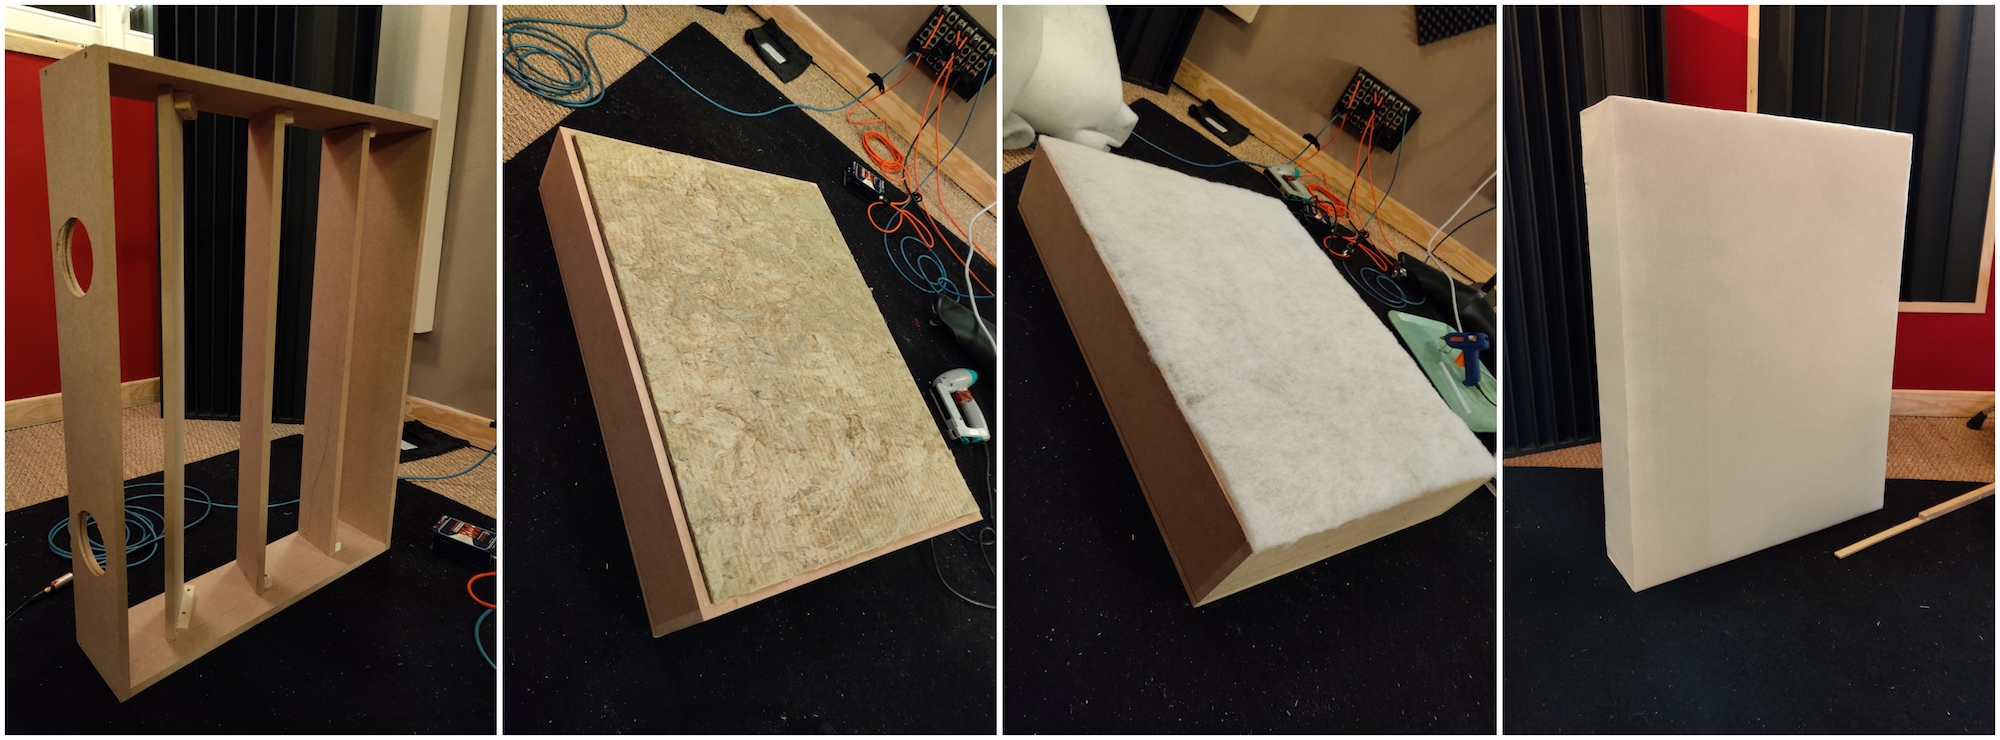 The different steps to build an acoustic absorber panel